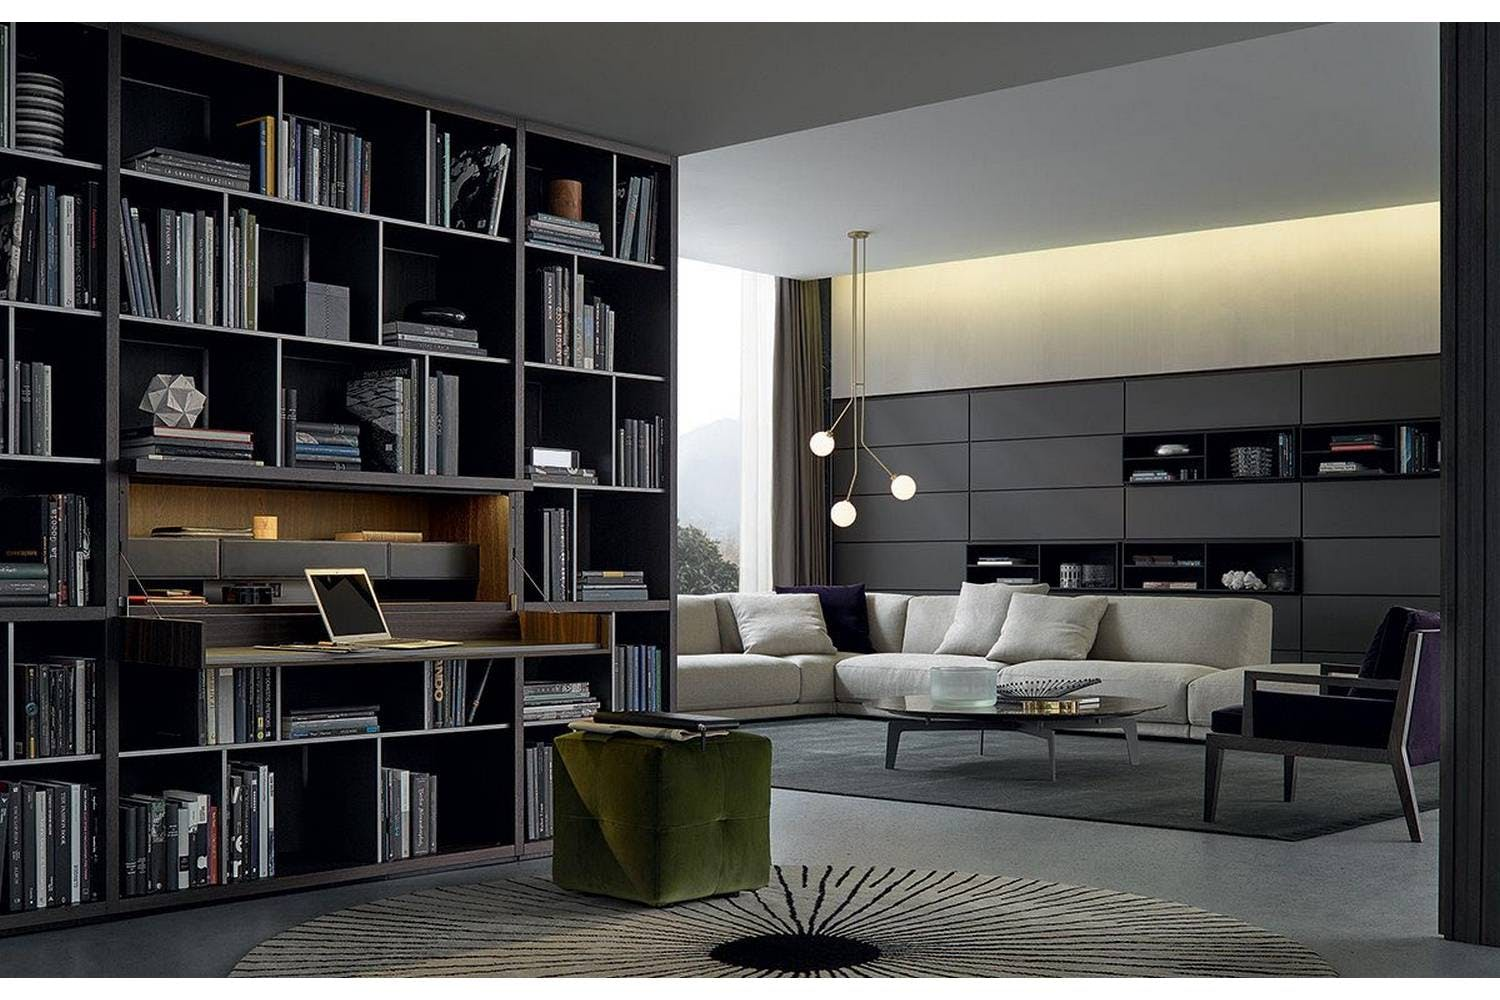 Wall System Bookcase by CR&S Poliform for Poliform | Poliform Australia